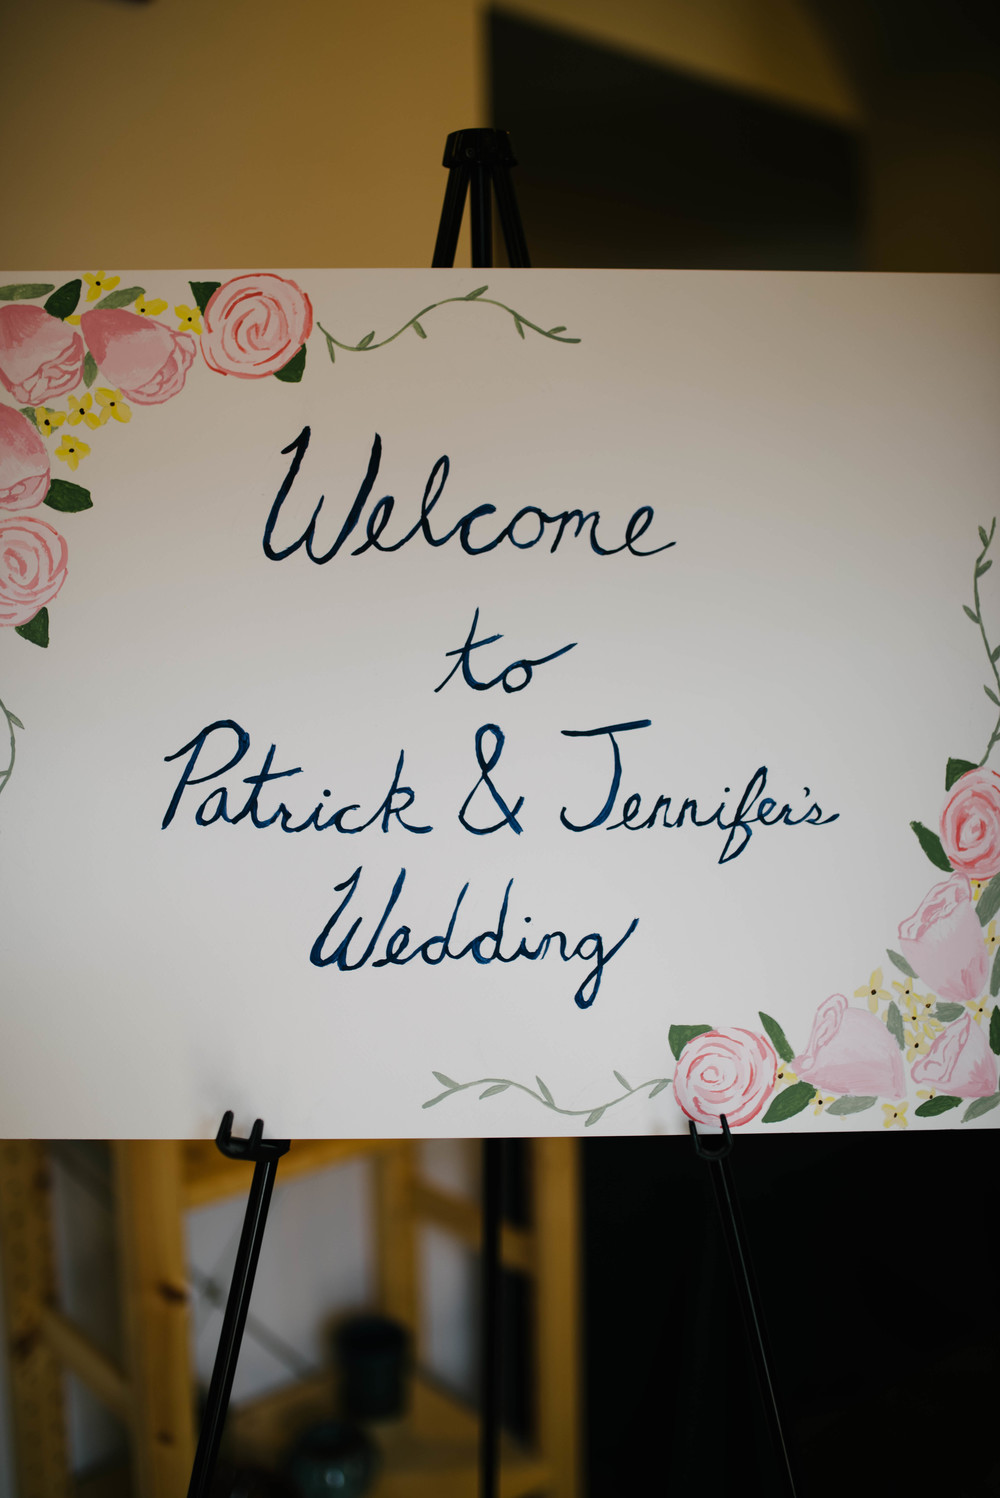 Union-project-pittsburgh-wedding-26.jpg